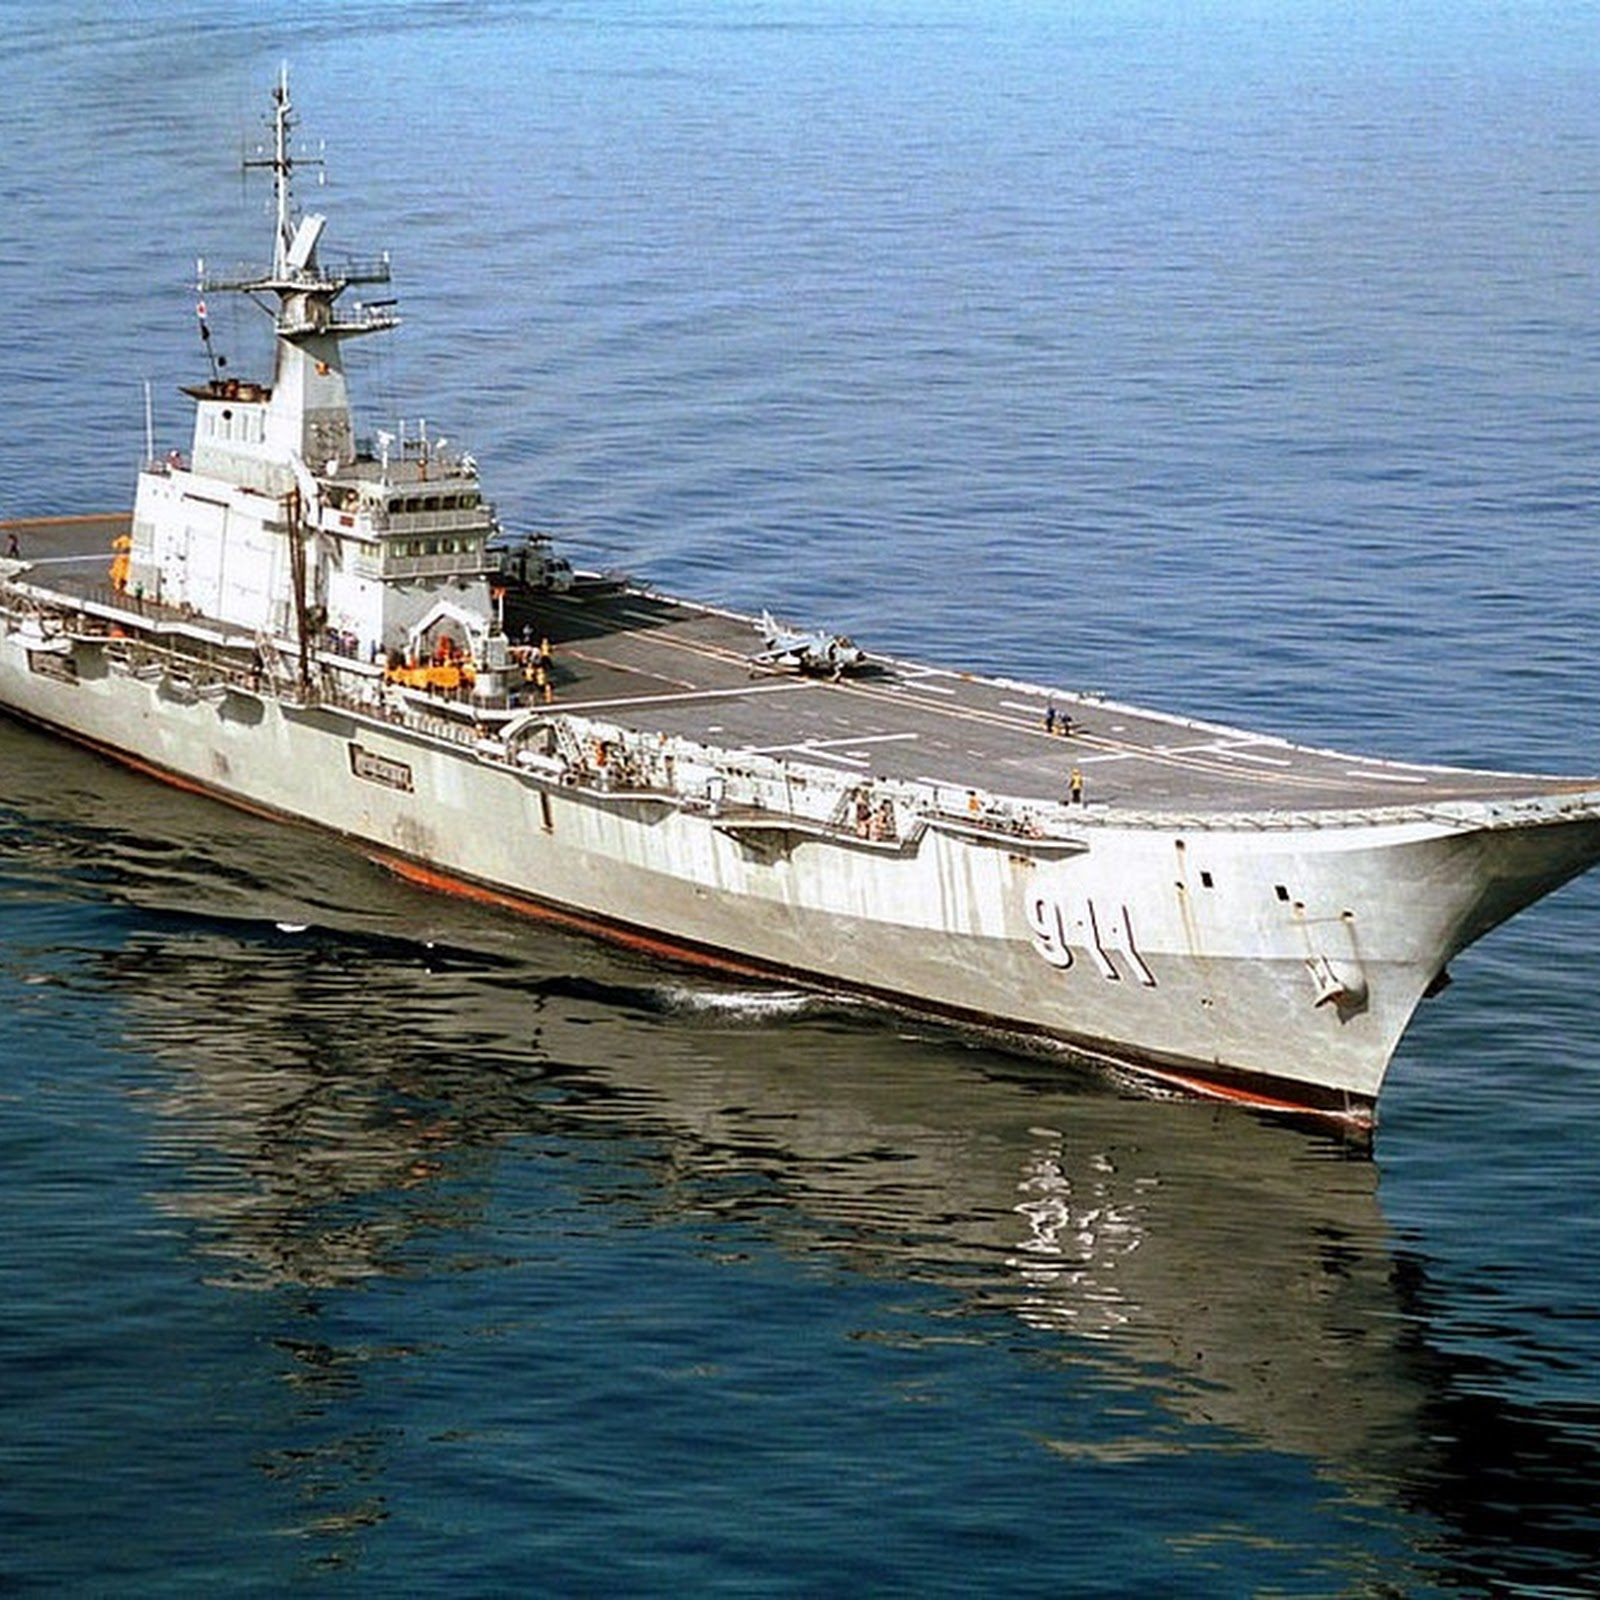 Thailand's Aircraft-Less Aircraft Carrier